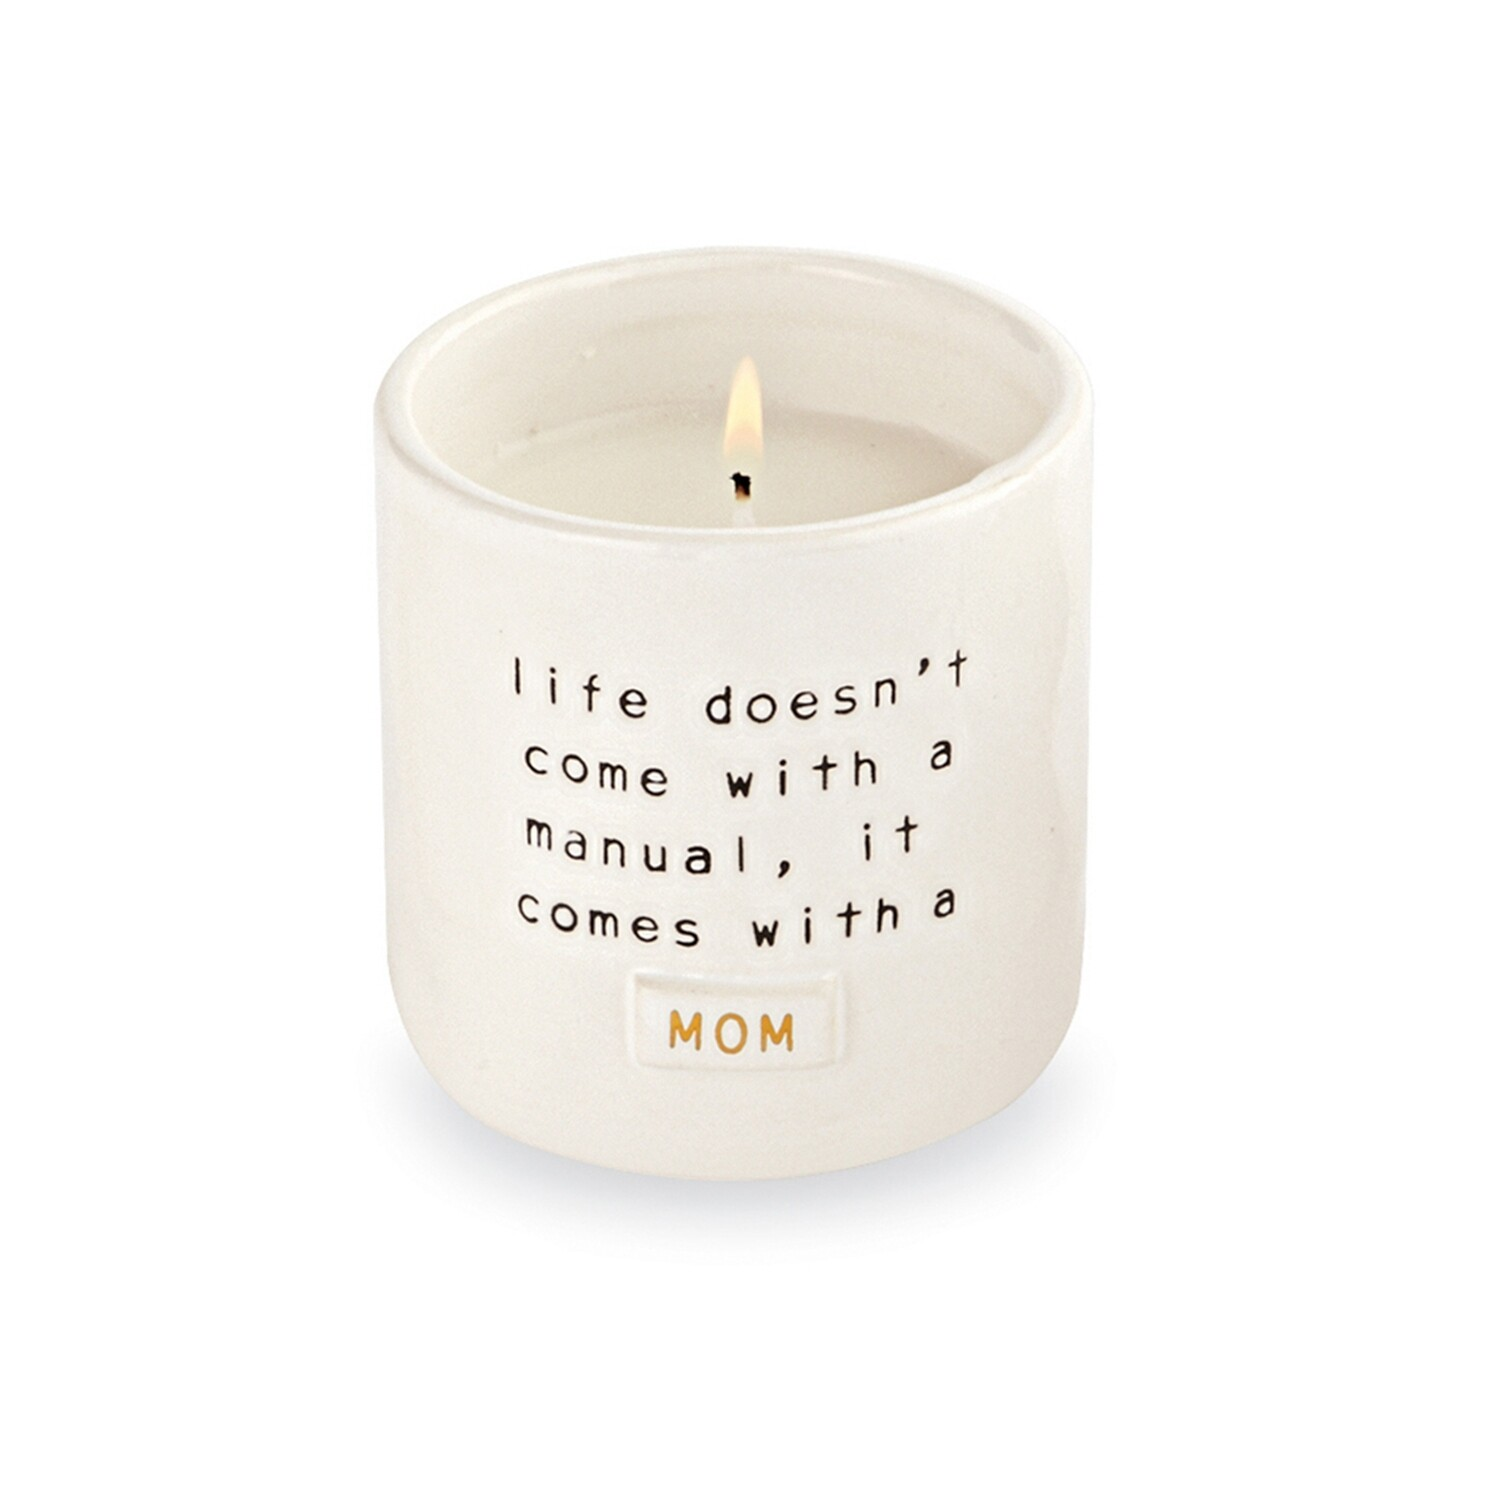 MP Mom boxed Candle - life